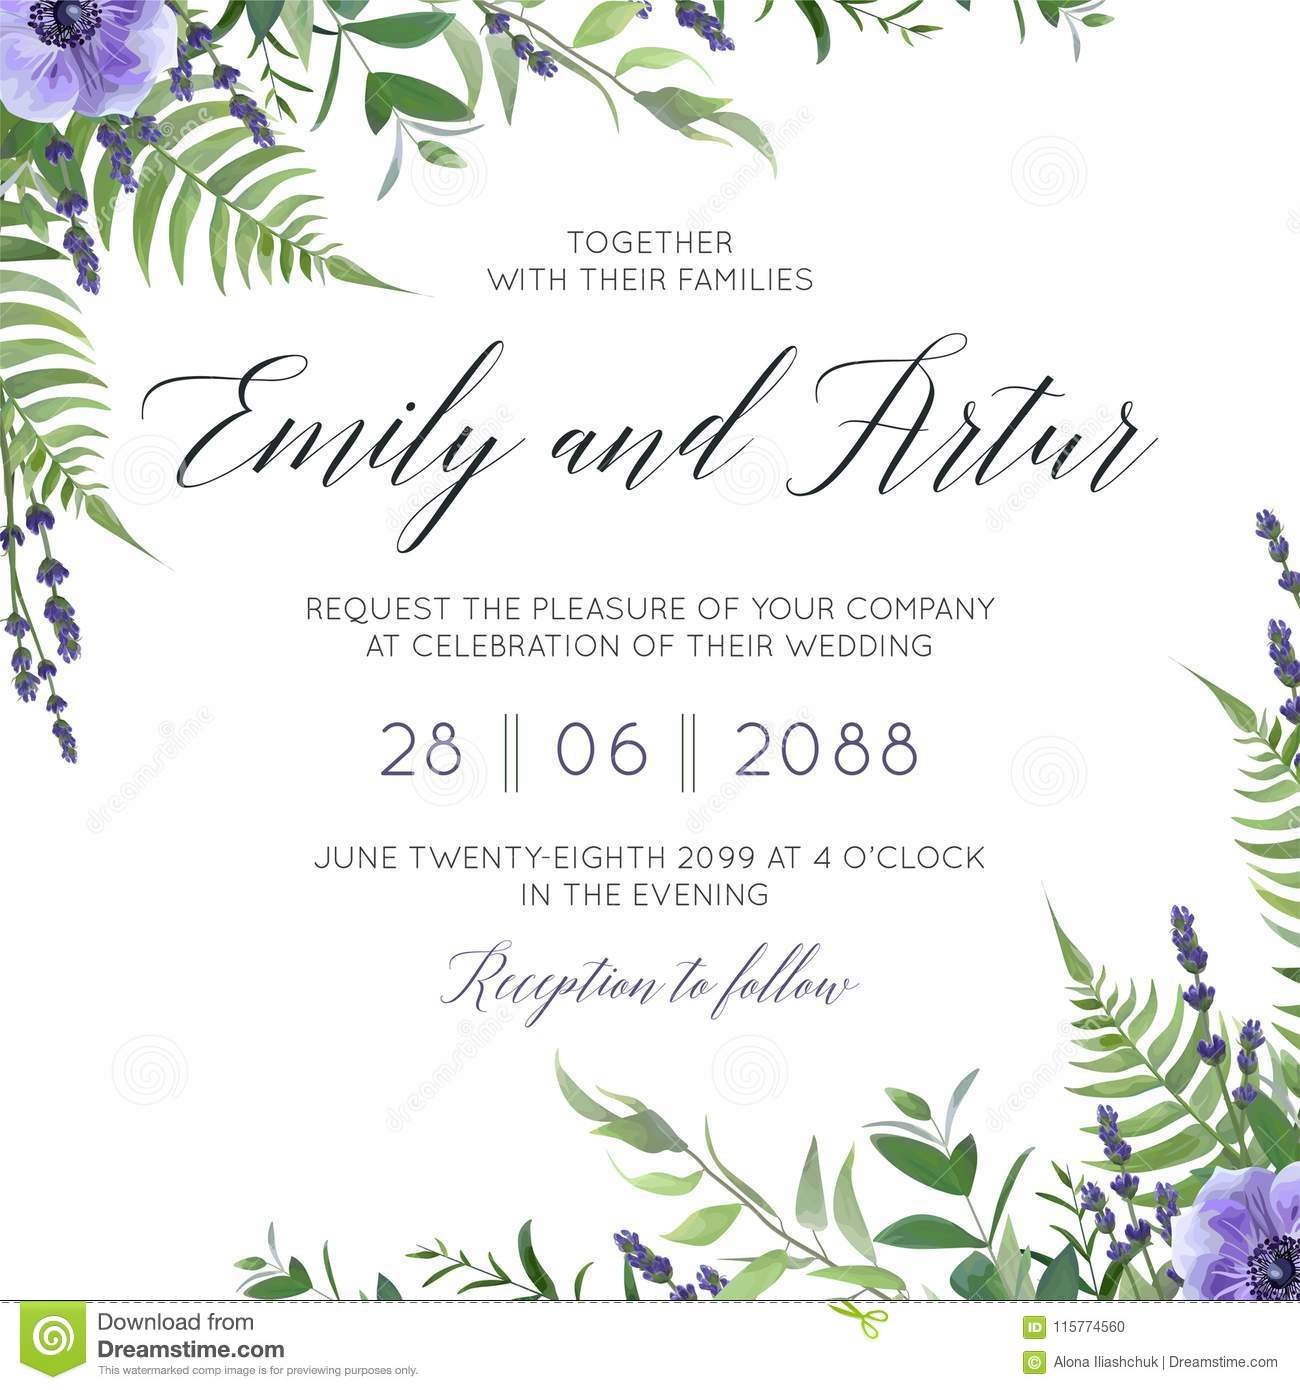 Wedding floral invite, invitation save the date card design with watercolor lavender blossom, violet anemone flowers, forest gree